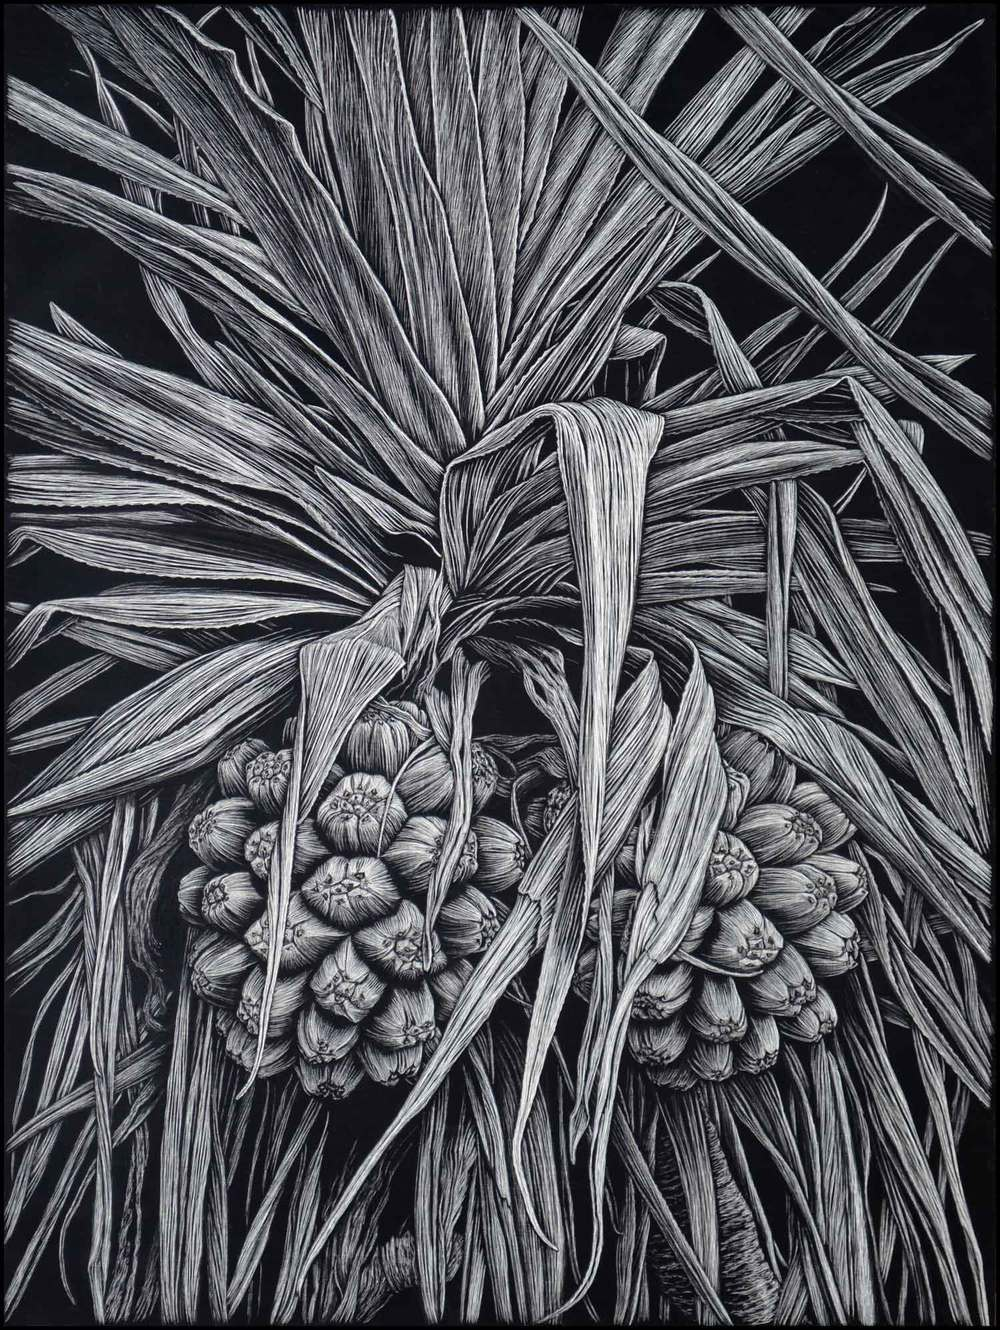 Pandanus Palm Beach 61 x 45.5 cm    Edition of 50 Pigment on cotton rag paper $1,000